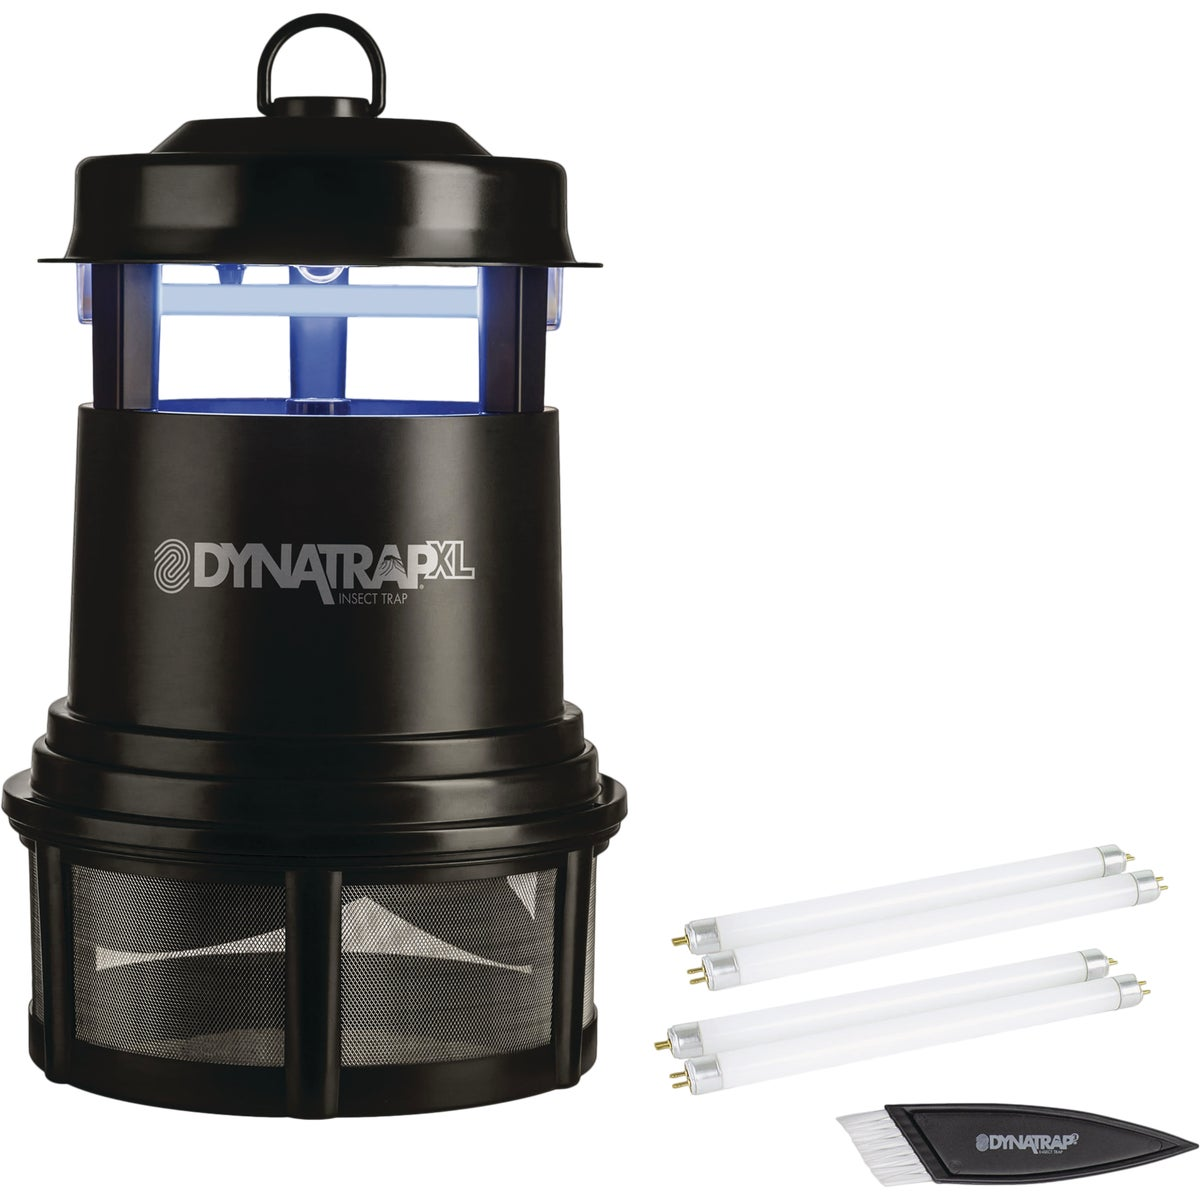 1 ACRE INSECT TRAP - DT2000XL by Dynamic Solutions